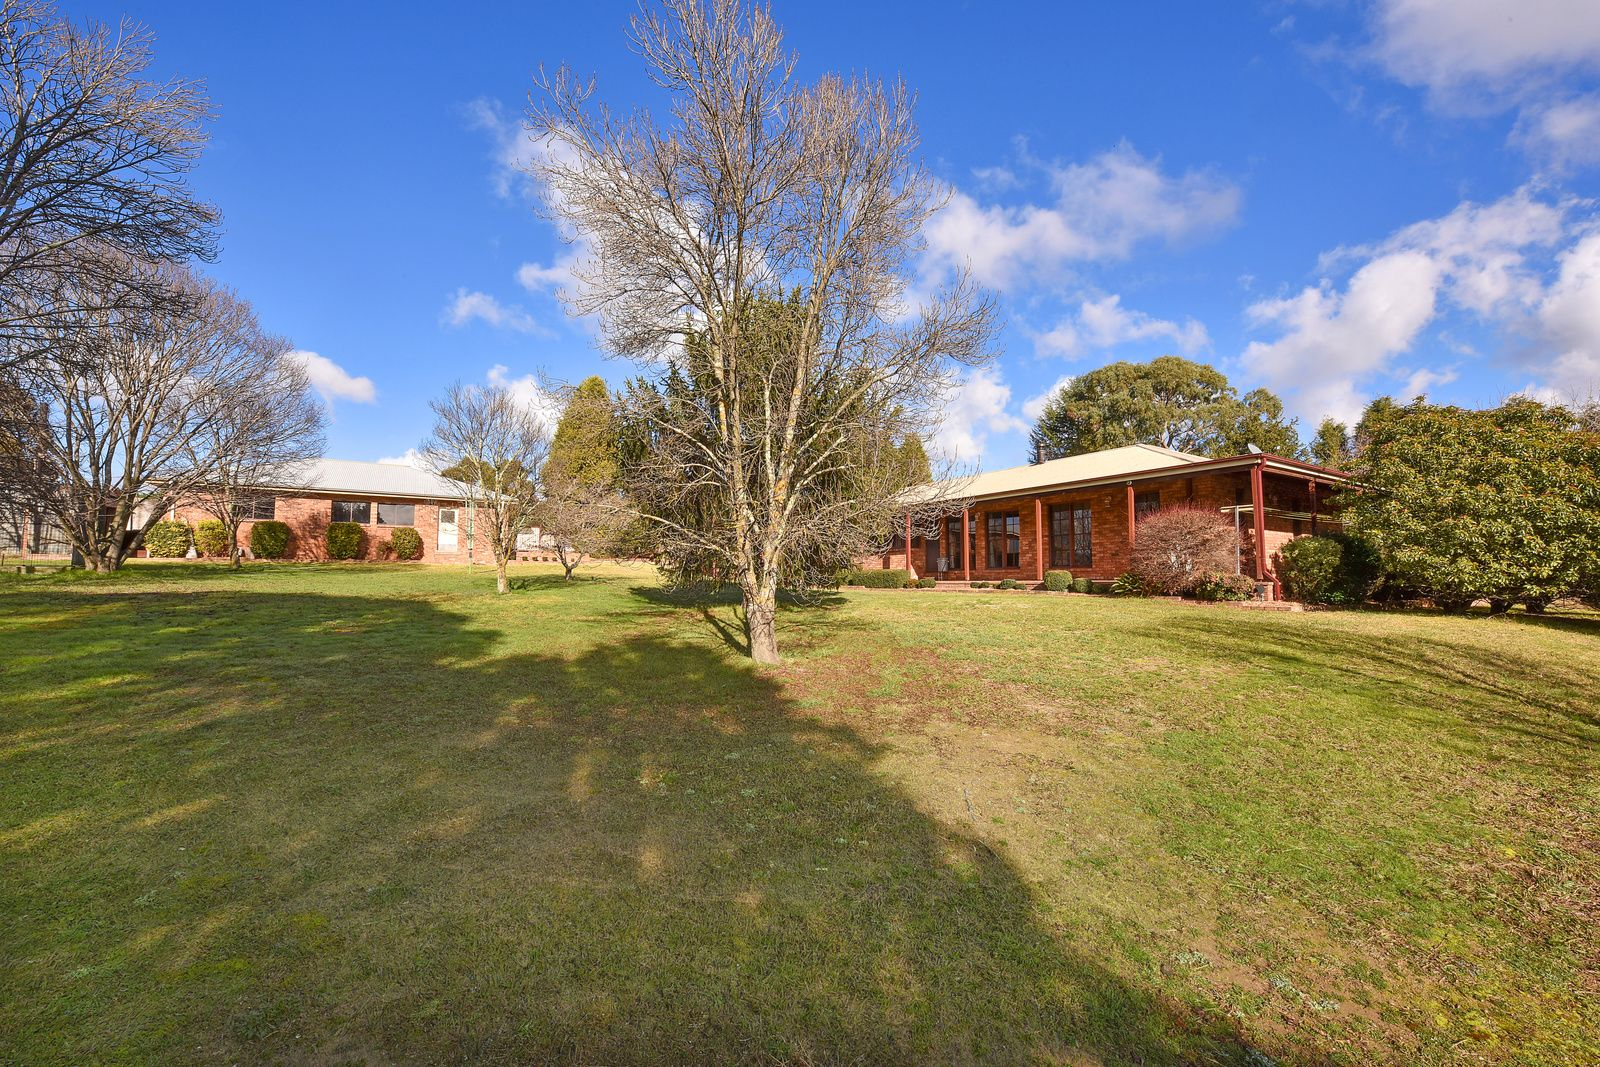 Lot 243 View Street, Lidsdale NSW 2790, Image 2